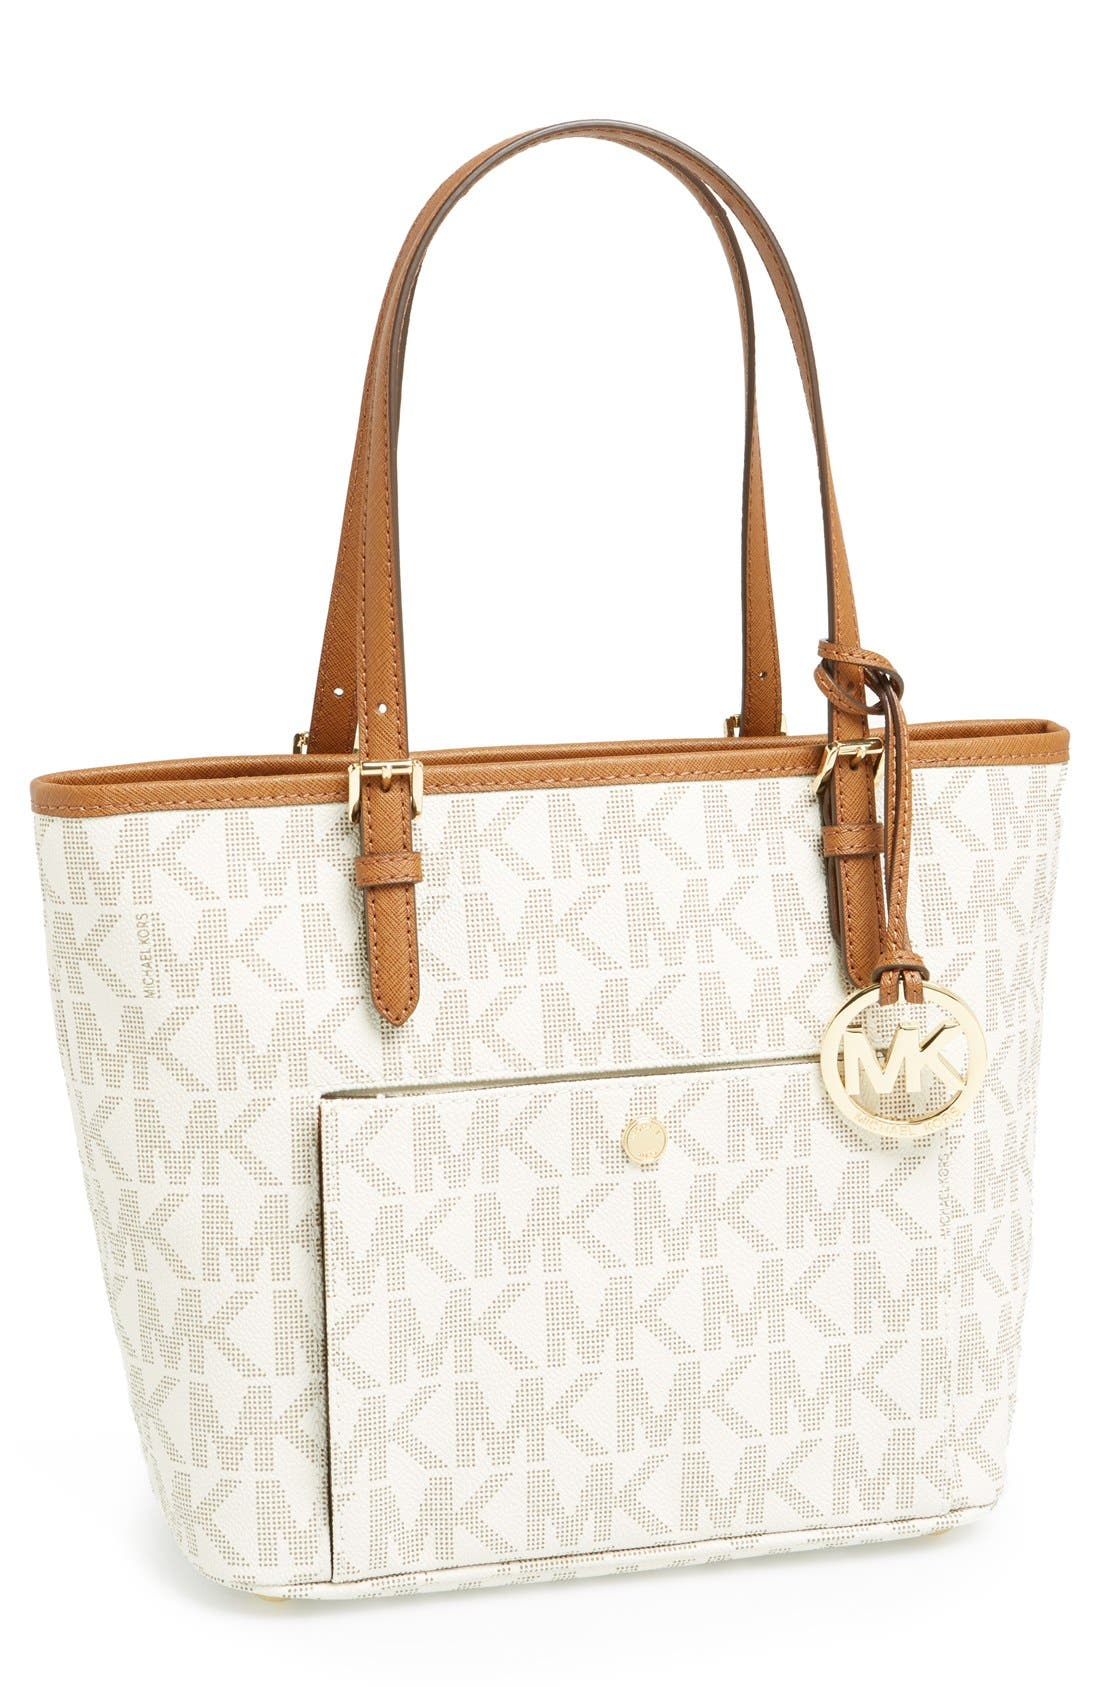 Alternate Image 1 Selected - MICHAEL Michael Kors 'Medium Jet Set' Signature Snap Pocket Tote